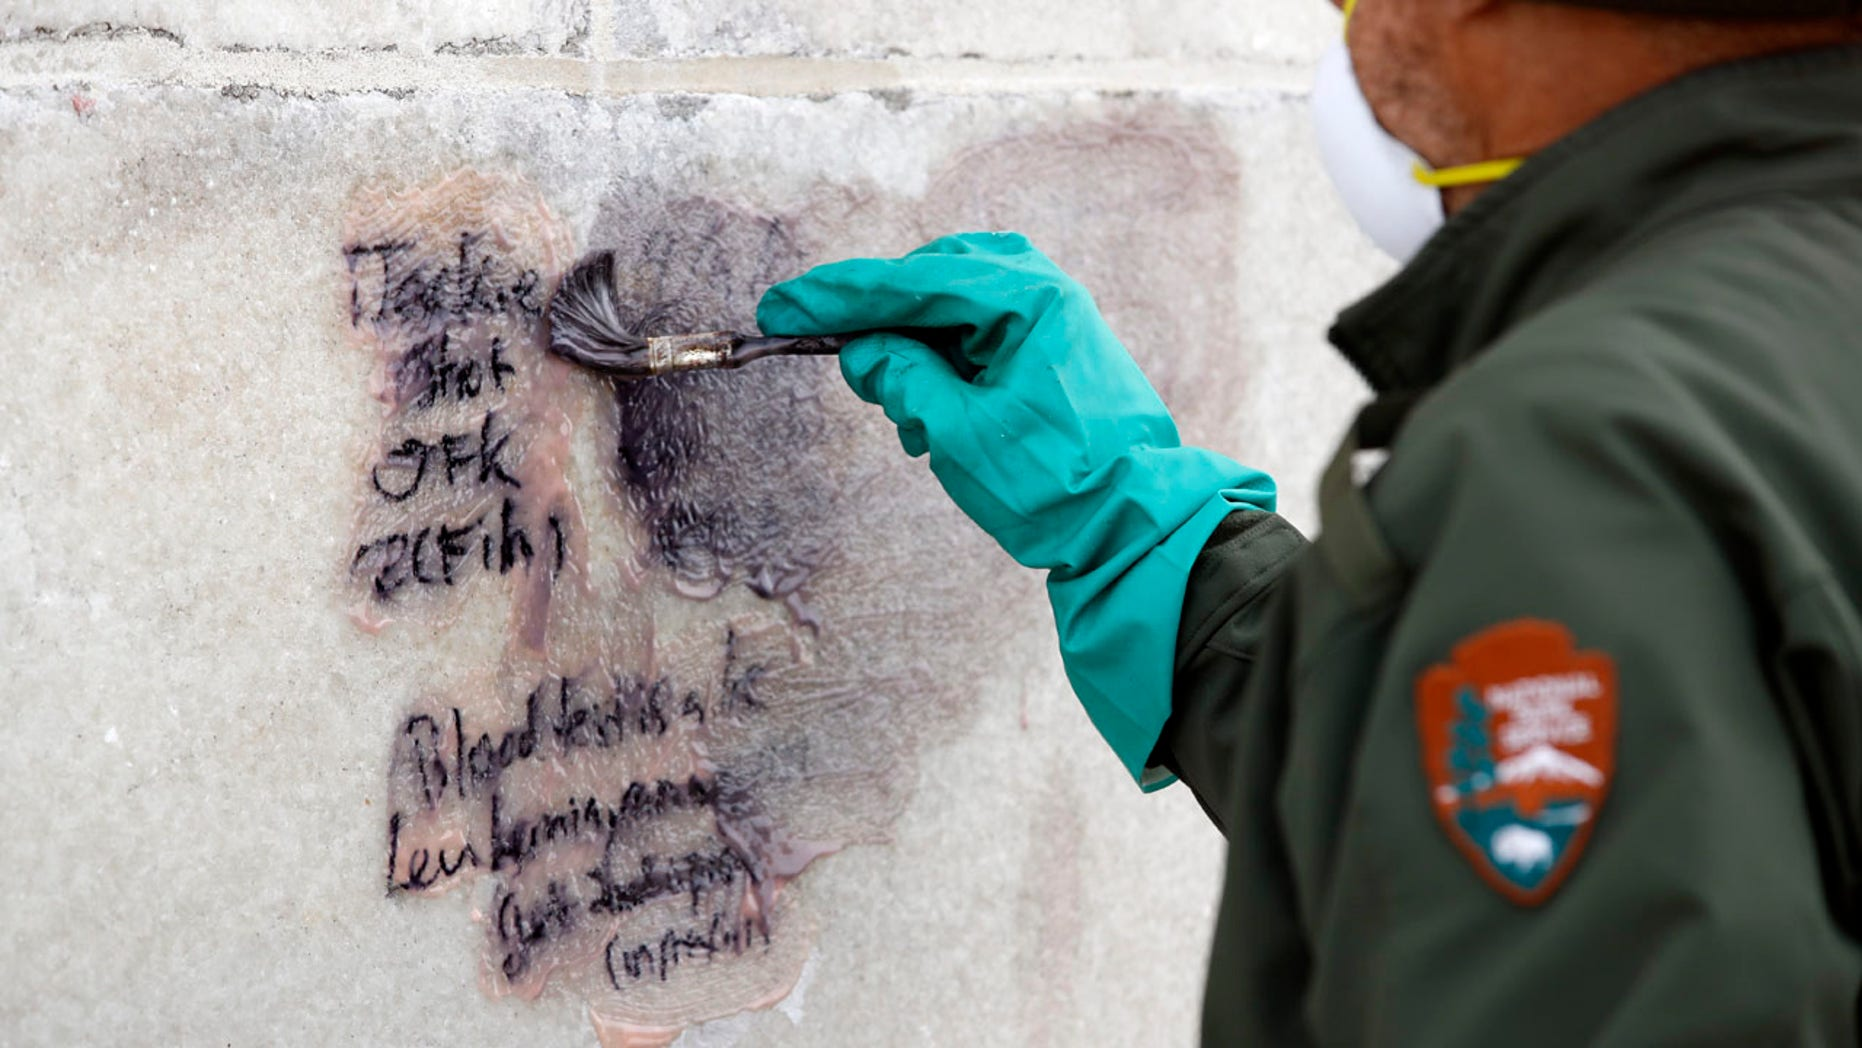 Feb. 21, 2017: A U.S. Park Service employee works to clean graffiti off of the Washington Monument.